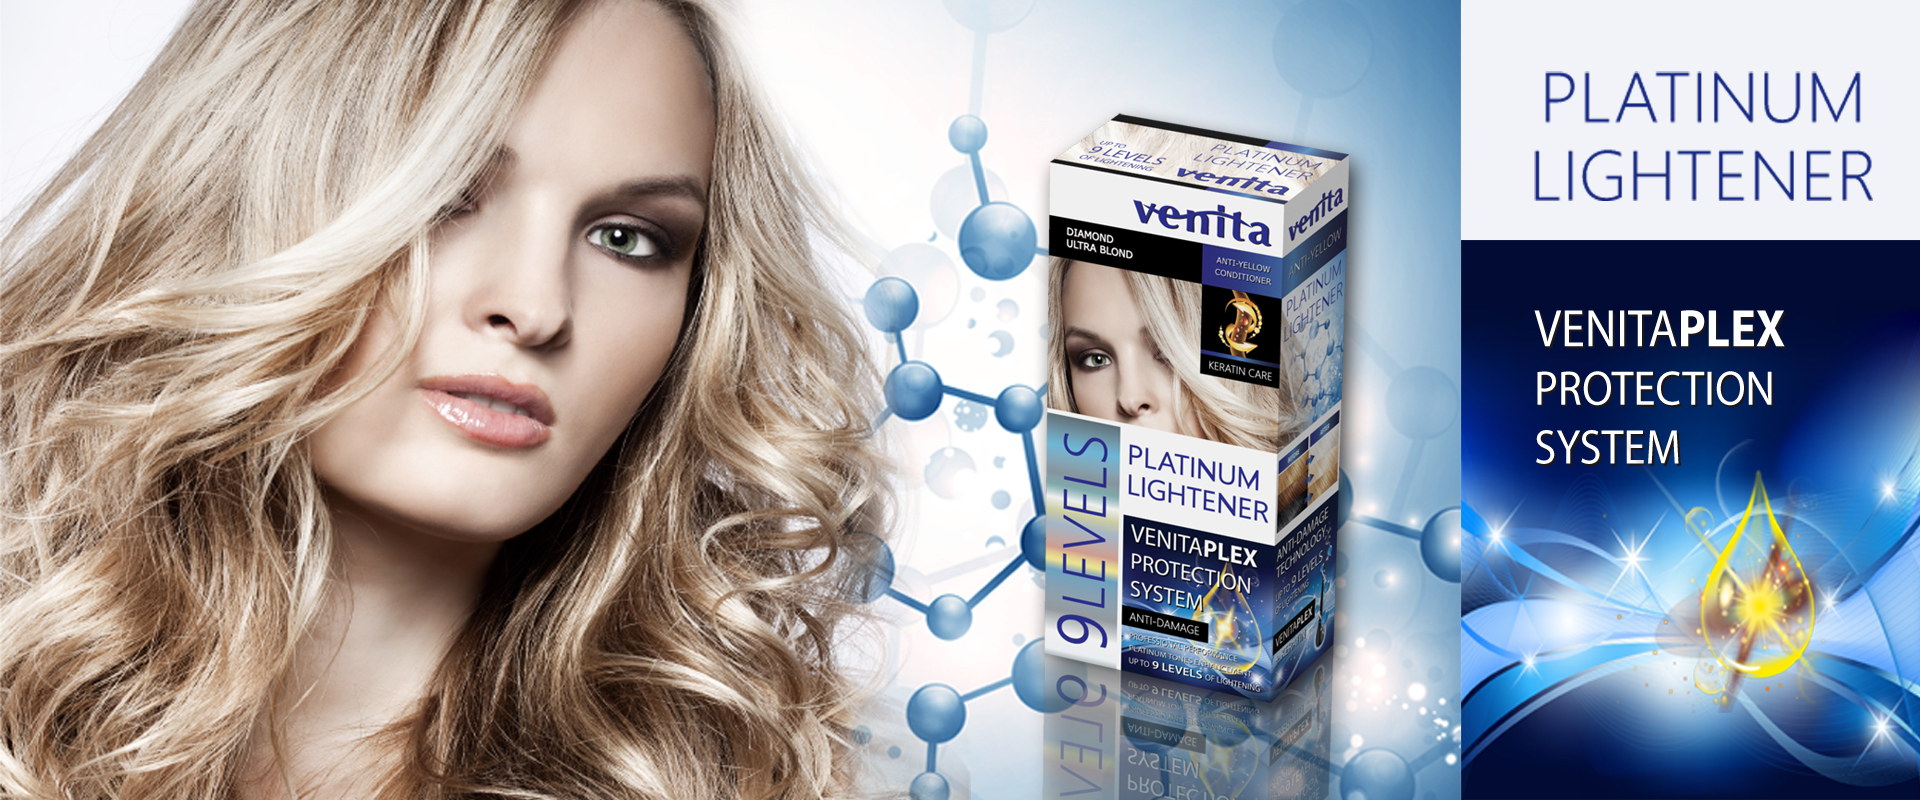 This is a blonde woman presenting luxurious hair lightener with protection system